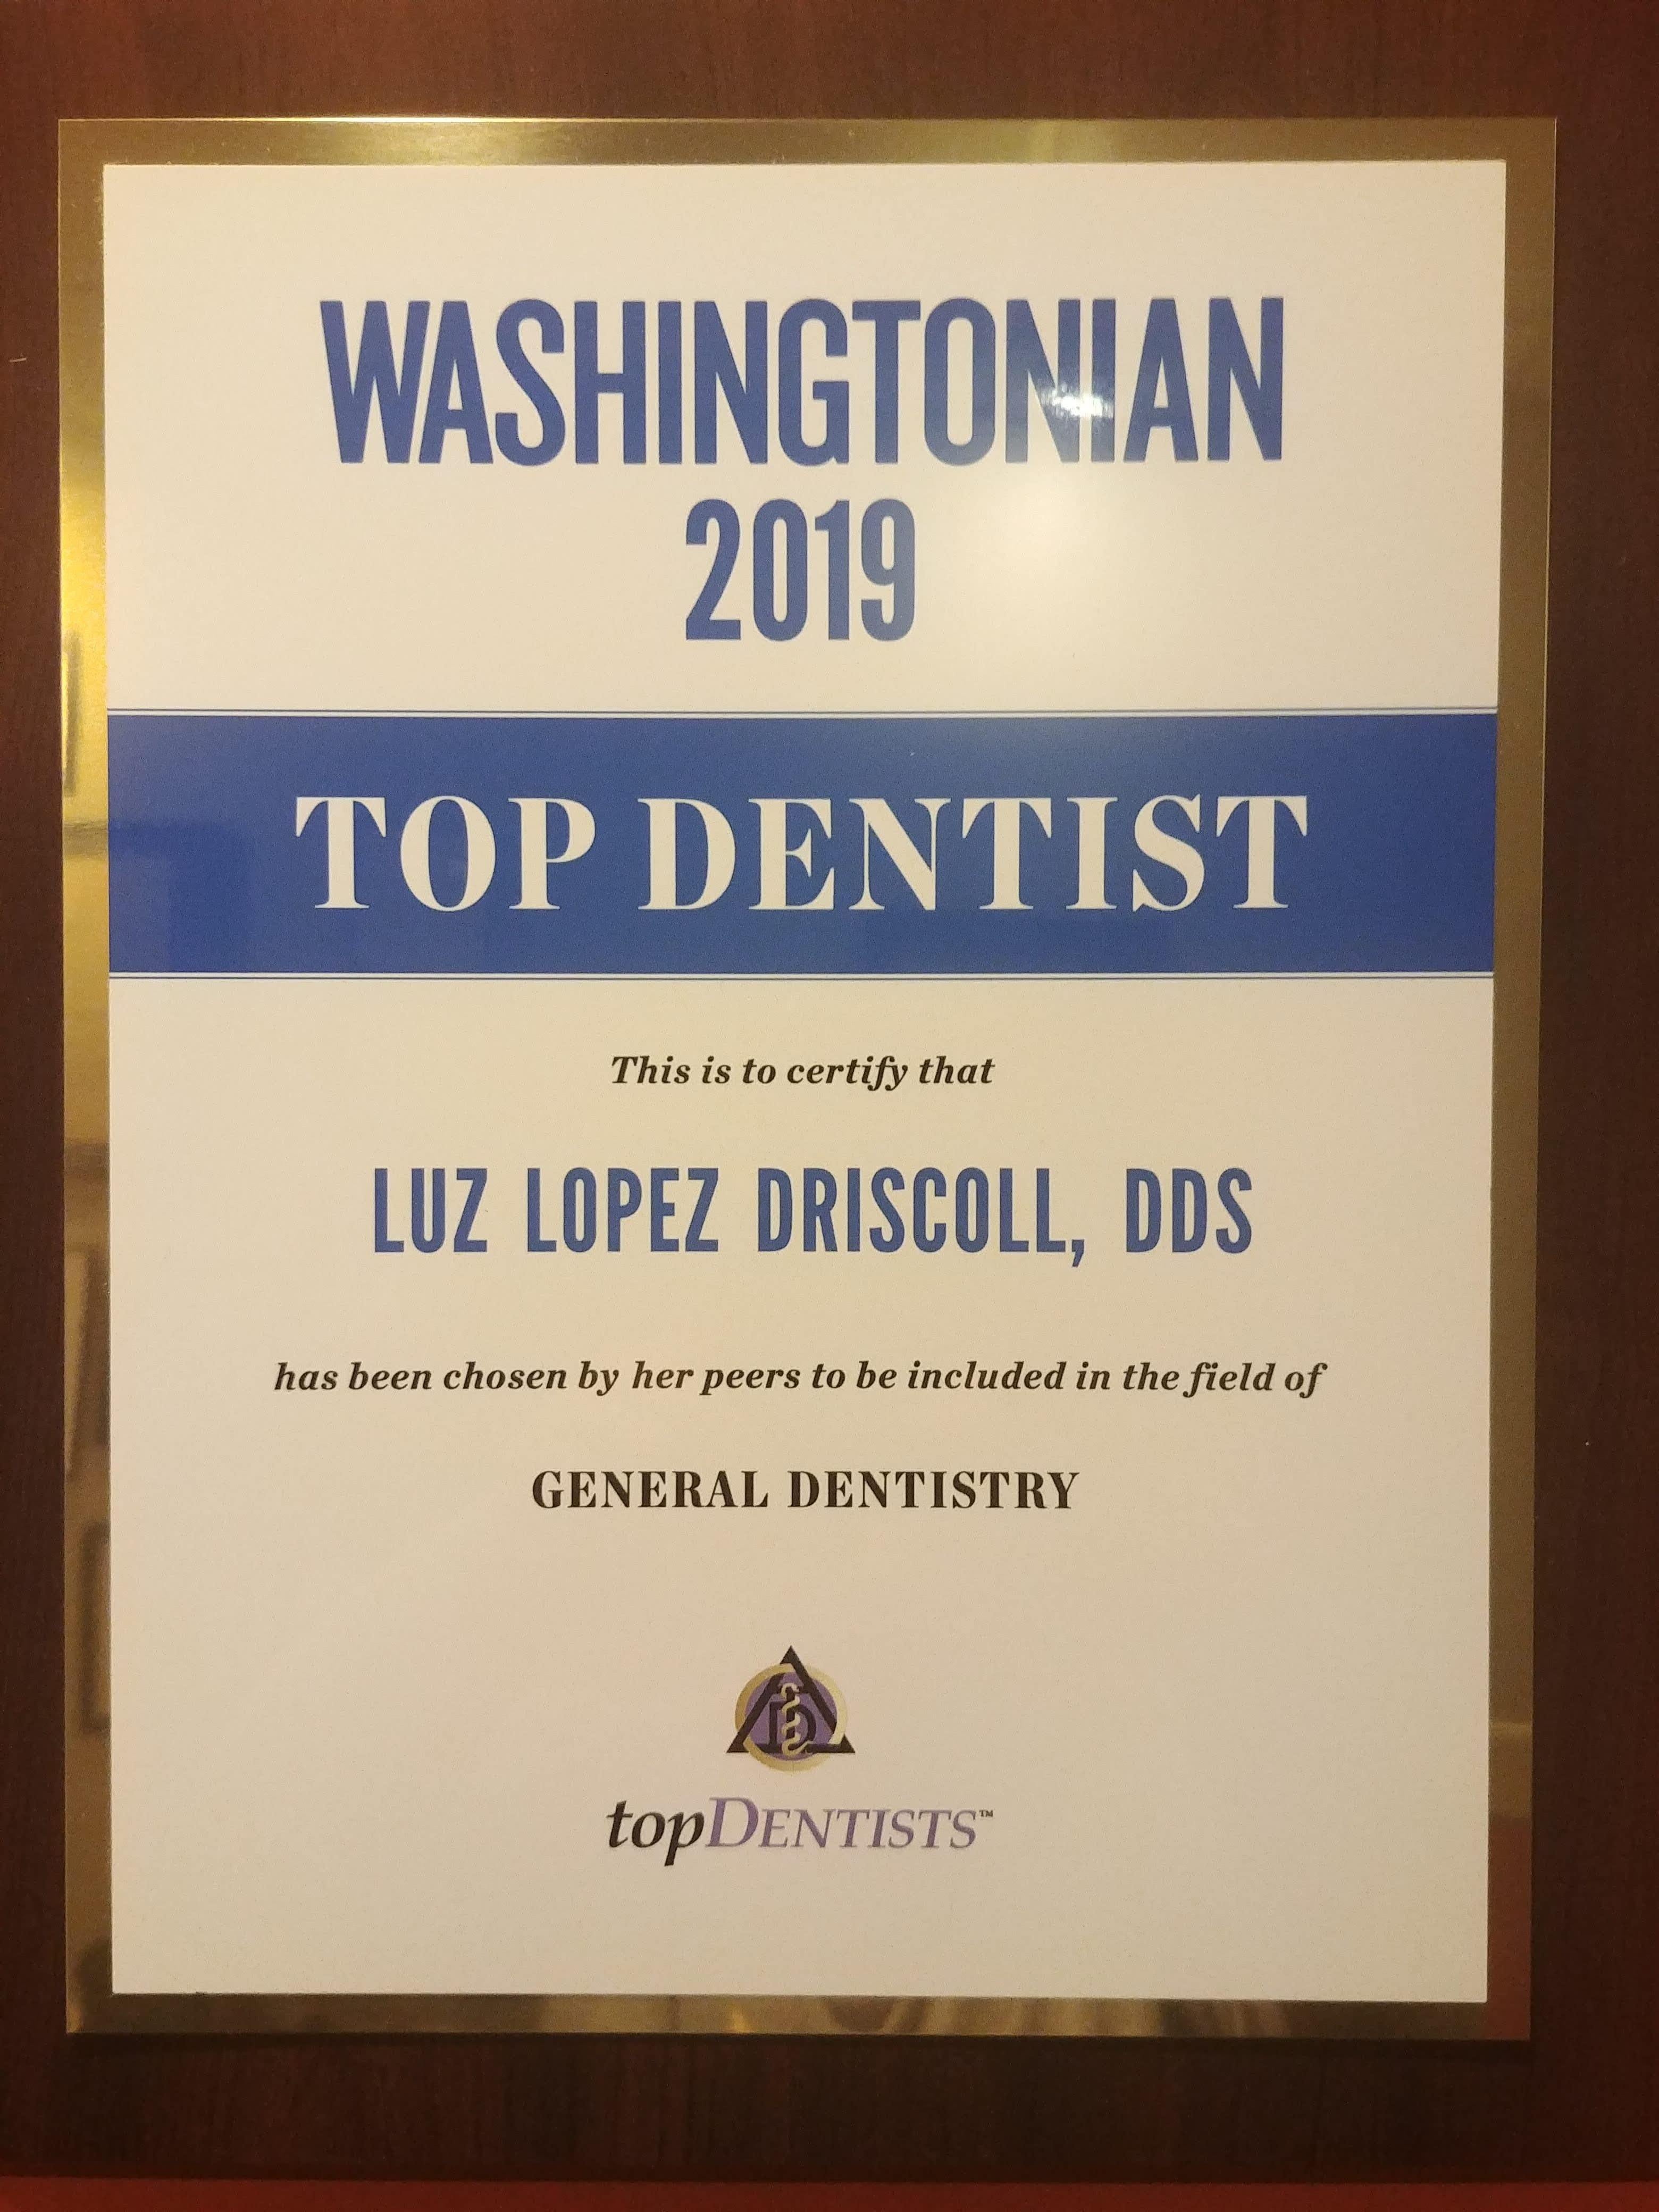 2017 Washingtonian Top Dentist Award